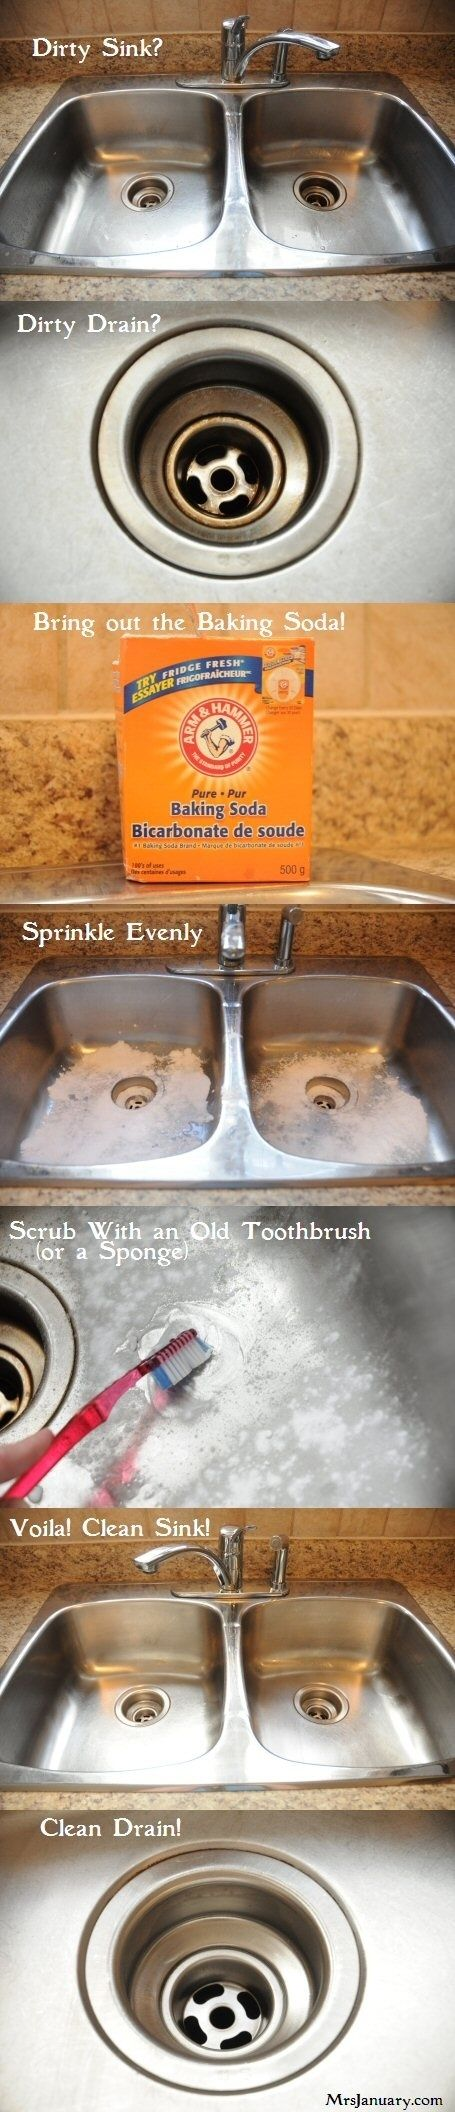 Clean a stainless steel sink with baking soda| 37 Ways to Give Your Kitchen a Deep Clean